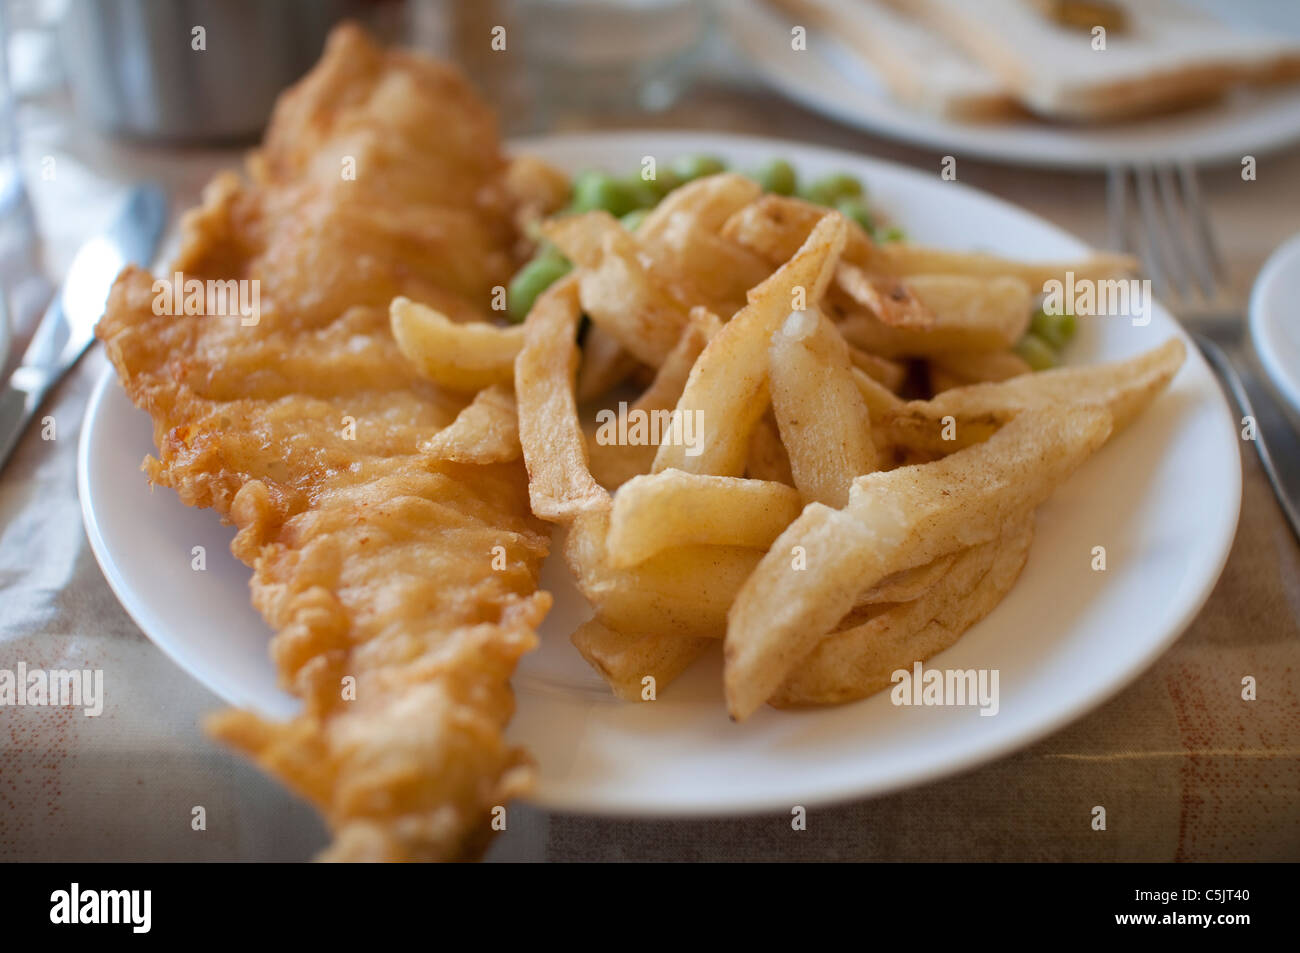 Fish and Chips served with mushy peas on a plate in England. - Stock Image